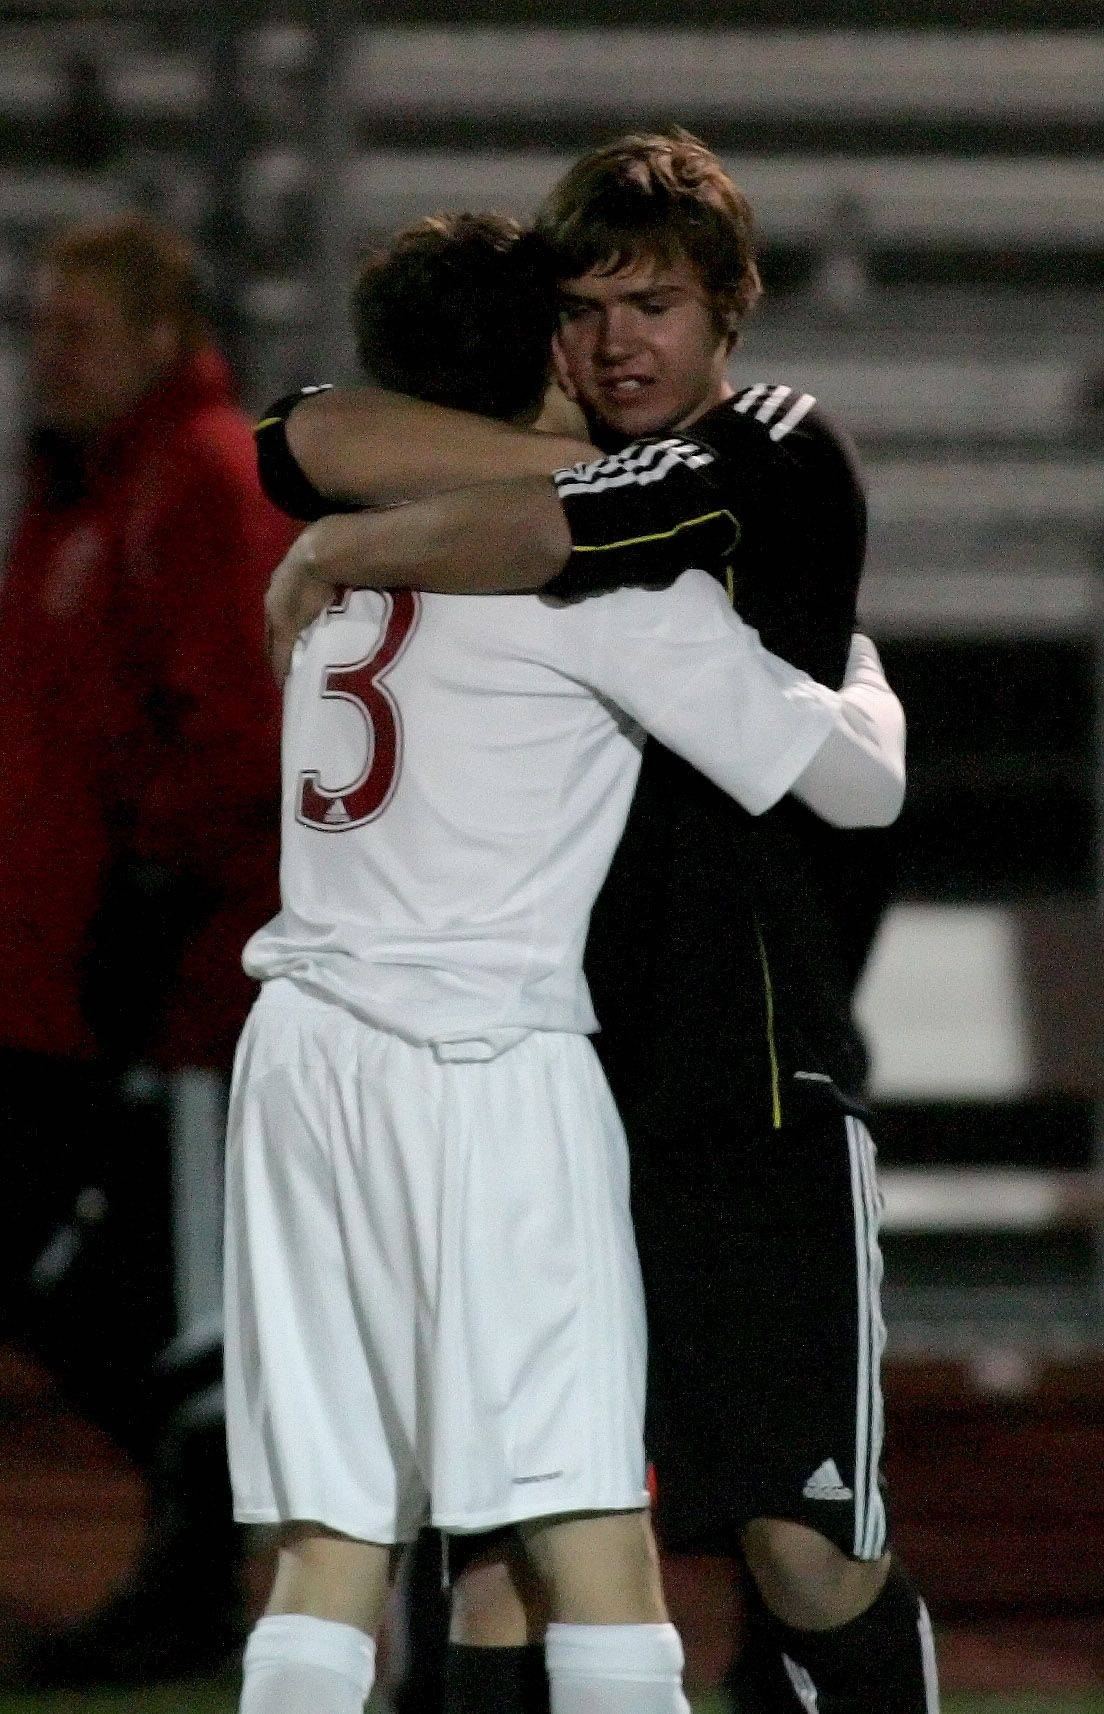 Jay Tegge hugs goalkeeper Mike Pavliga of Naperville Central after their 1-0 loss in overtime to Morton in the Class 3A state soccer championship game Saturday at Lincoln-Way North High School in Frankfort.